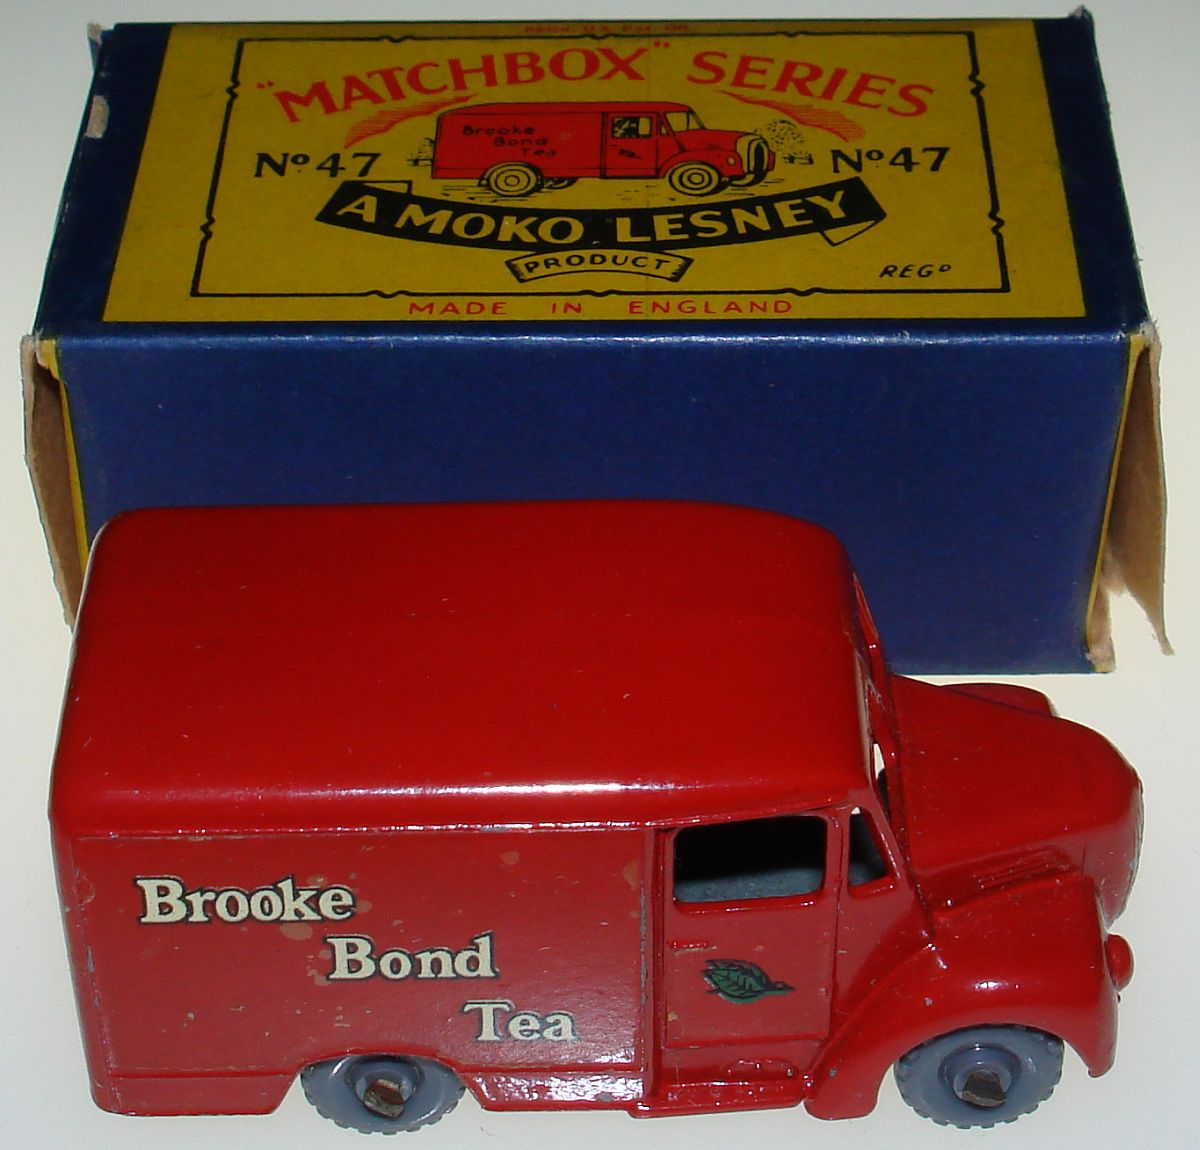 Vintage Matchbox Moko Lesney Grey Wheel Brook Bond Tea One Ton Trojan Van 47 Box